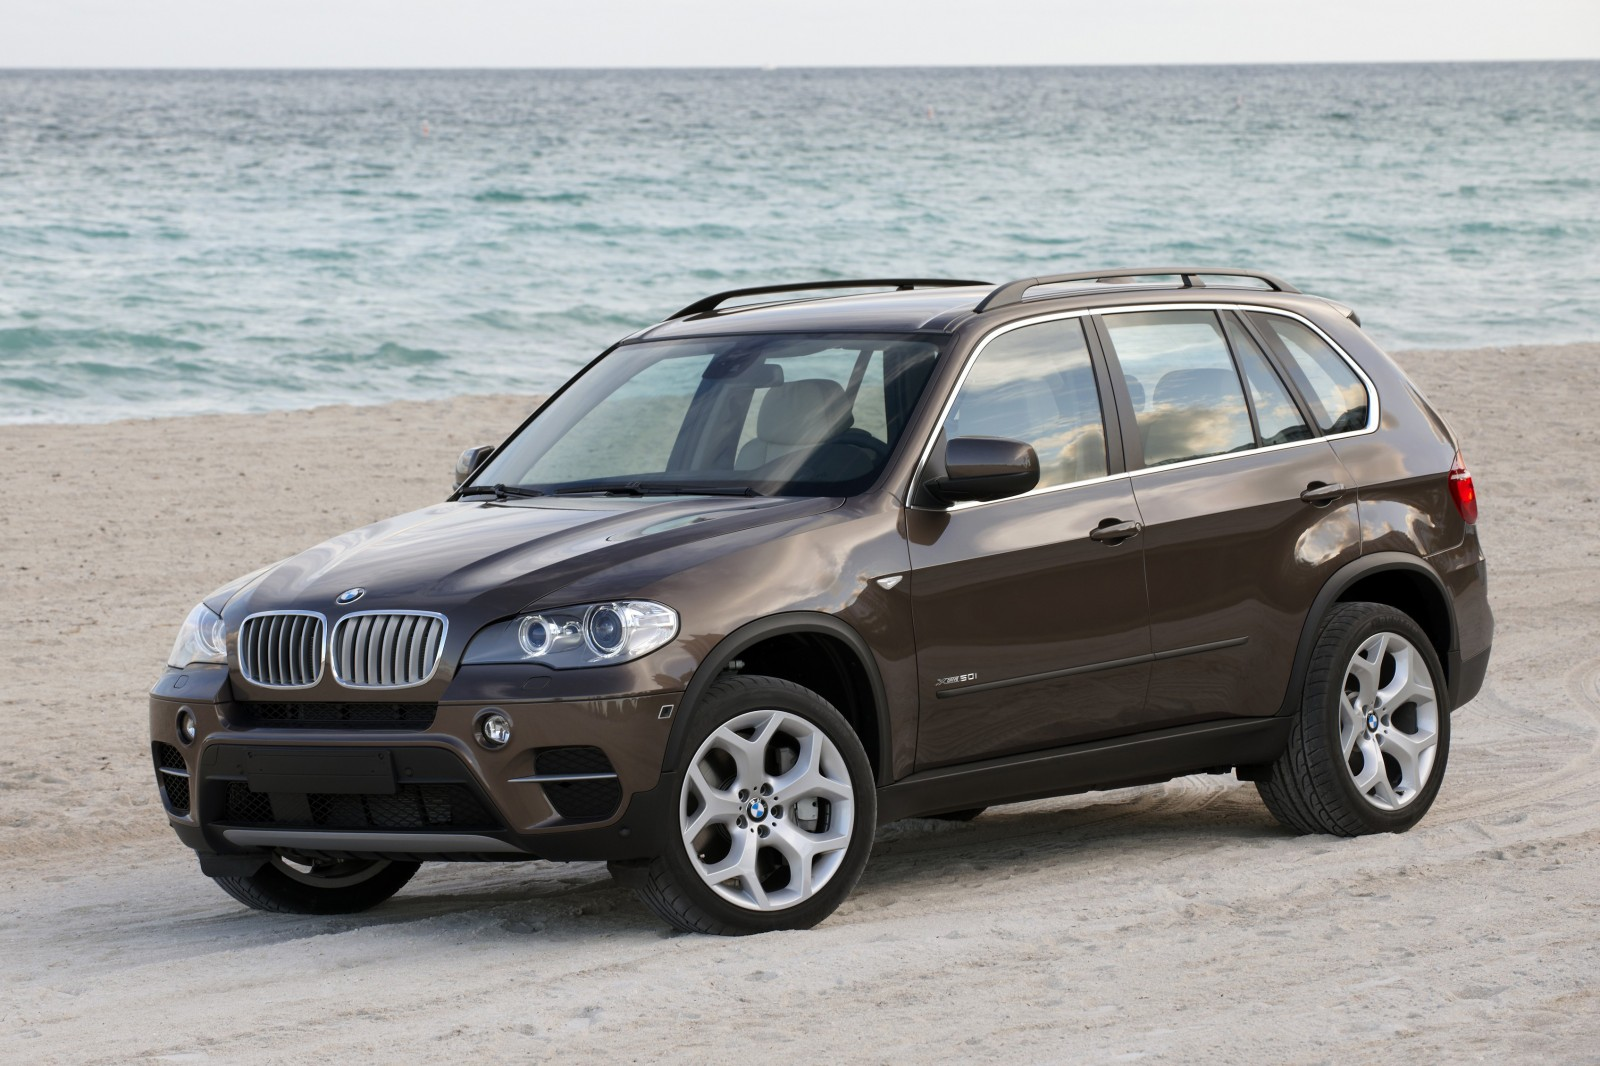 Bmw X5 2013 Review Amazing Pictures And Images Look At